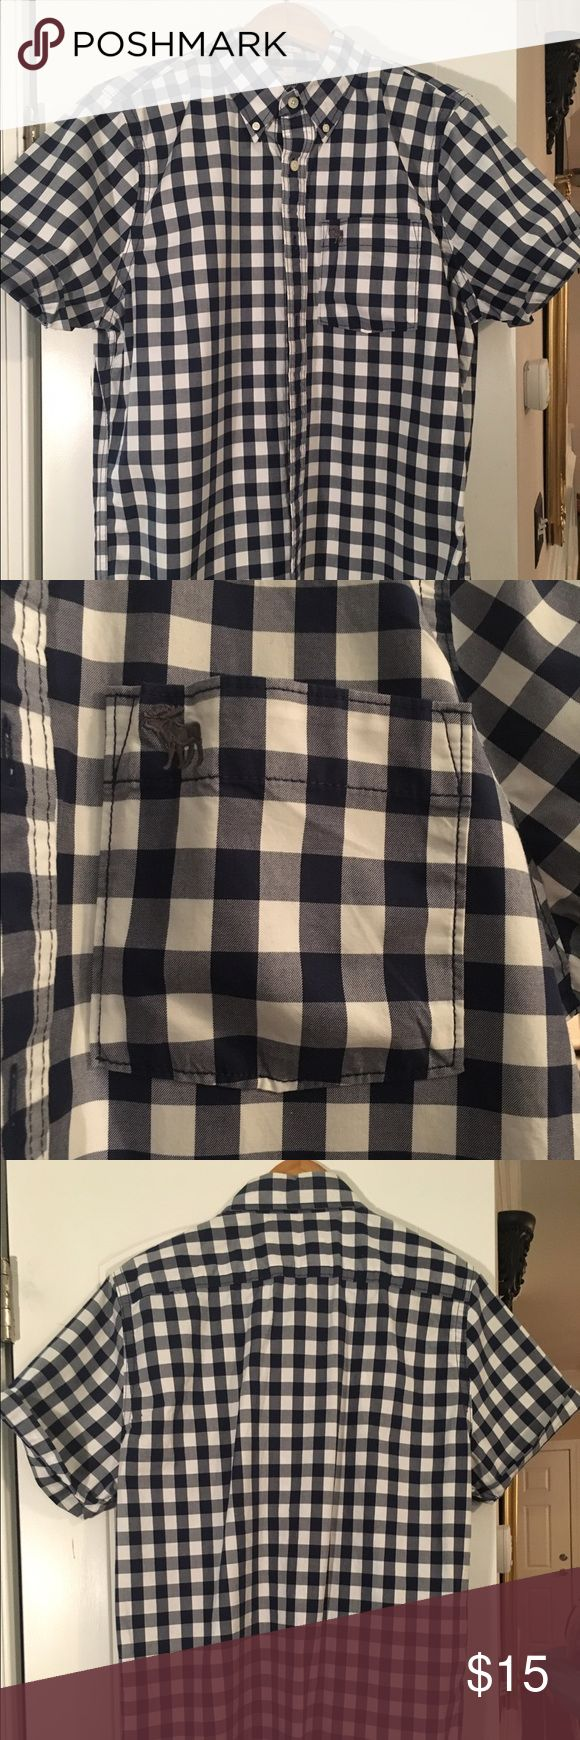 Abercrombie and Fitch short sleeve button up Like new Men's Abercrombie and Fitch muscle fit short sleeve button up. Blue block color size XXL. Abercrombie & Fitch Shirts Casual Button Down Shirts